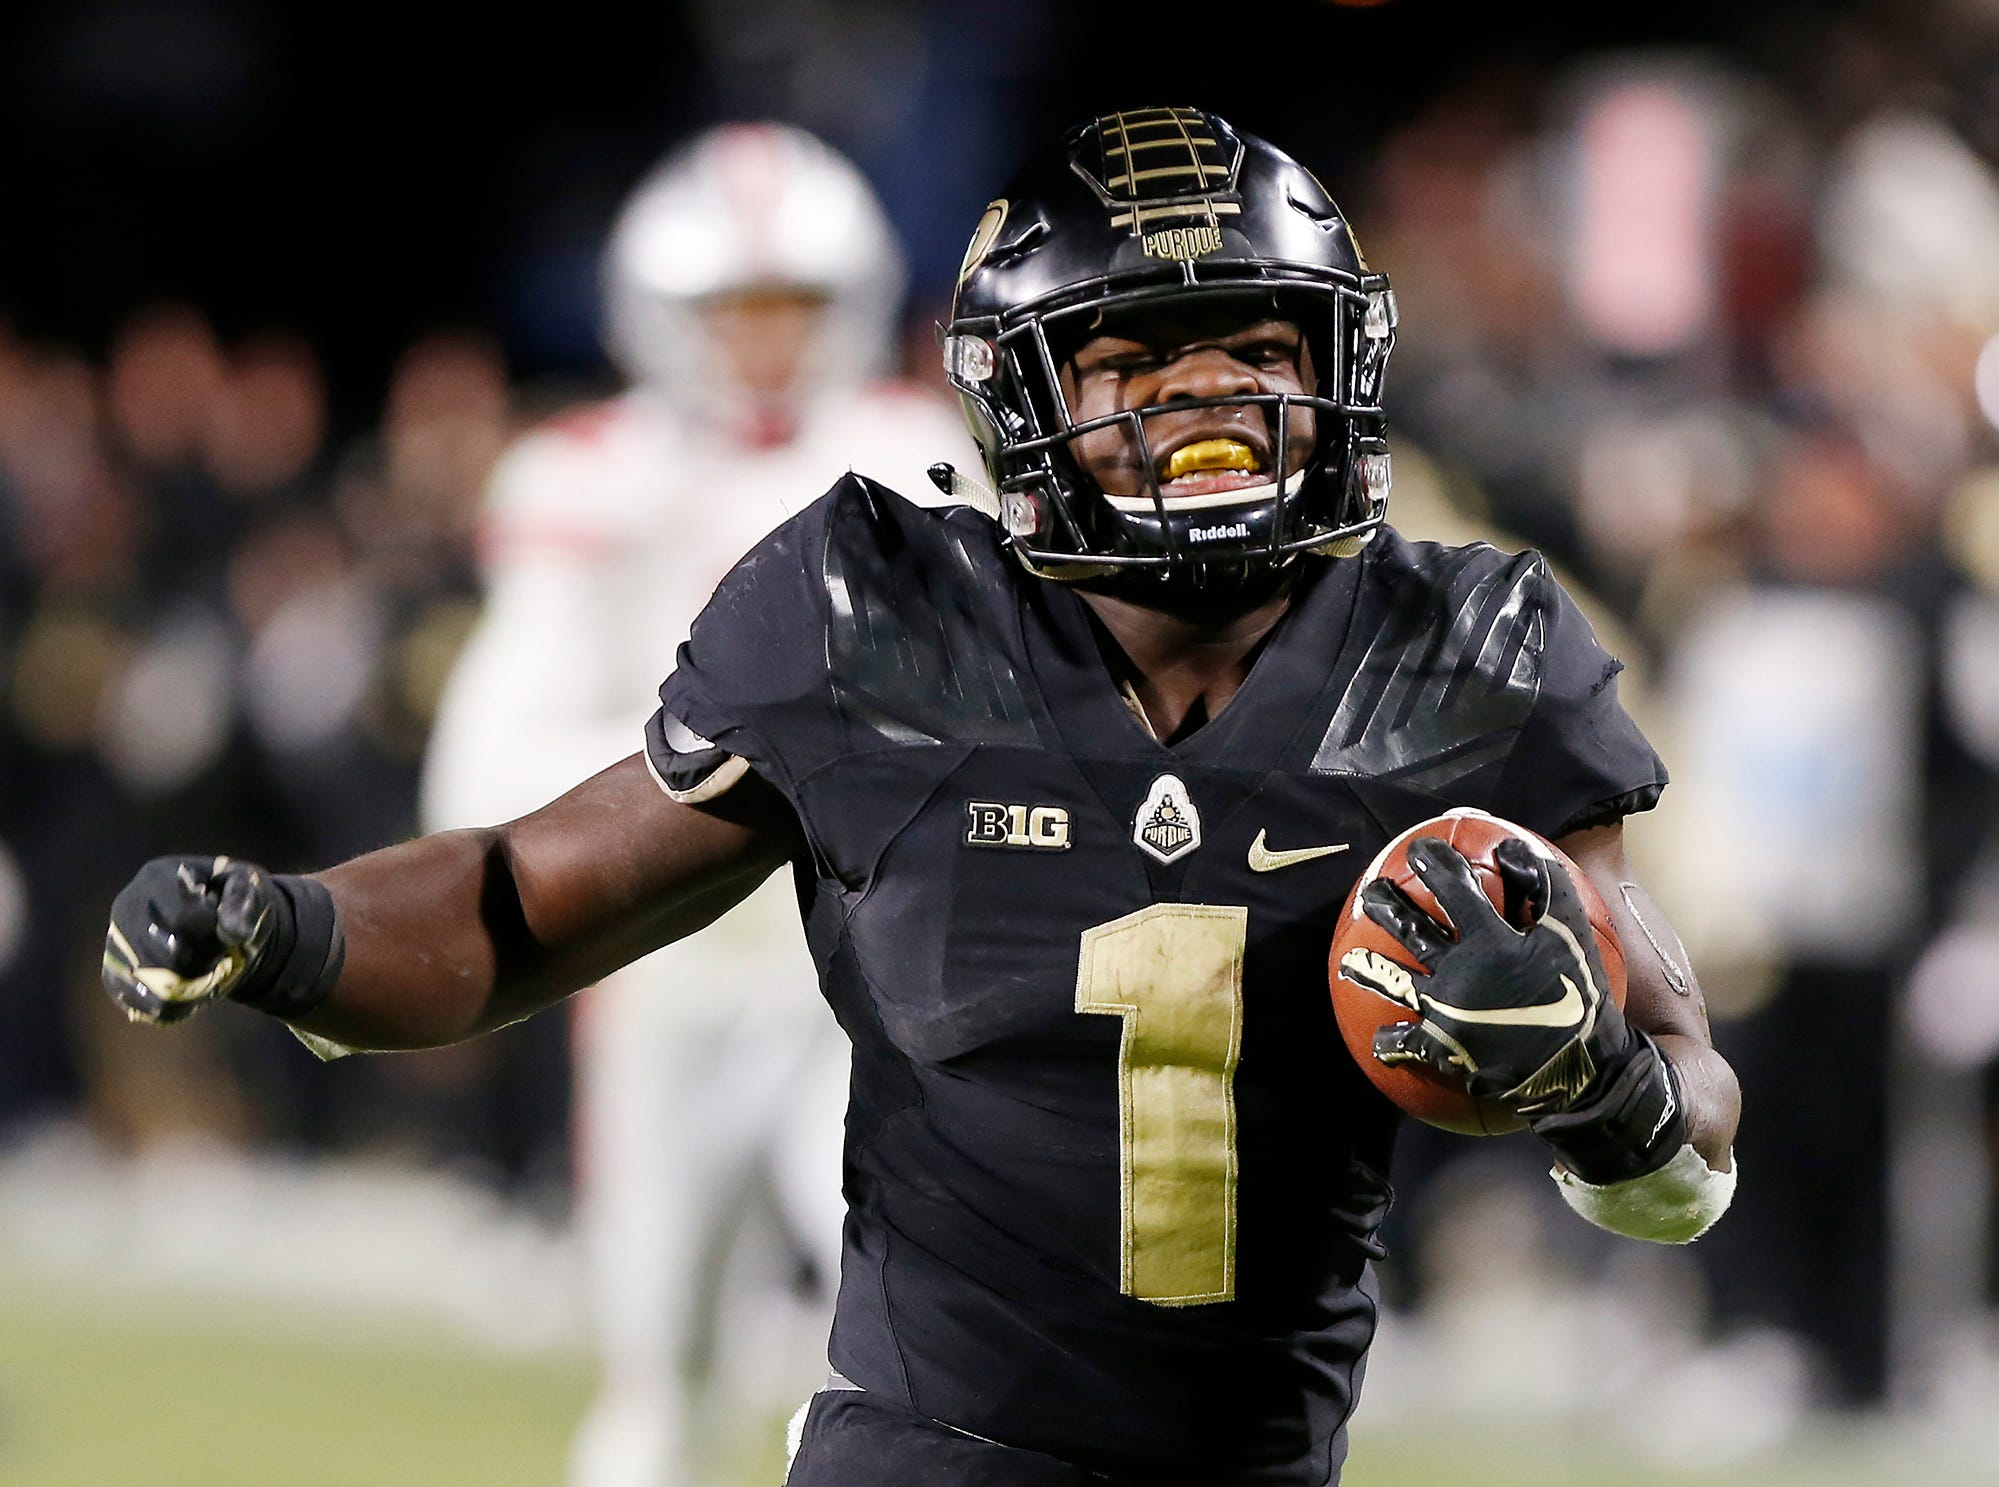 D. J. Knox of Purdue carries for a touchdown in the fourth quarter against Ohio State Saturday, October 20, 2018, at Ross-Ade Stadium. Purdue upset the No. 2 ranked Buckeyes 49-20.